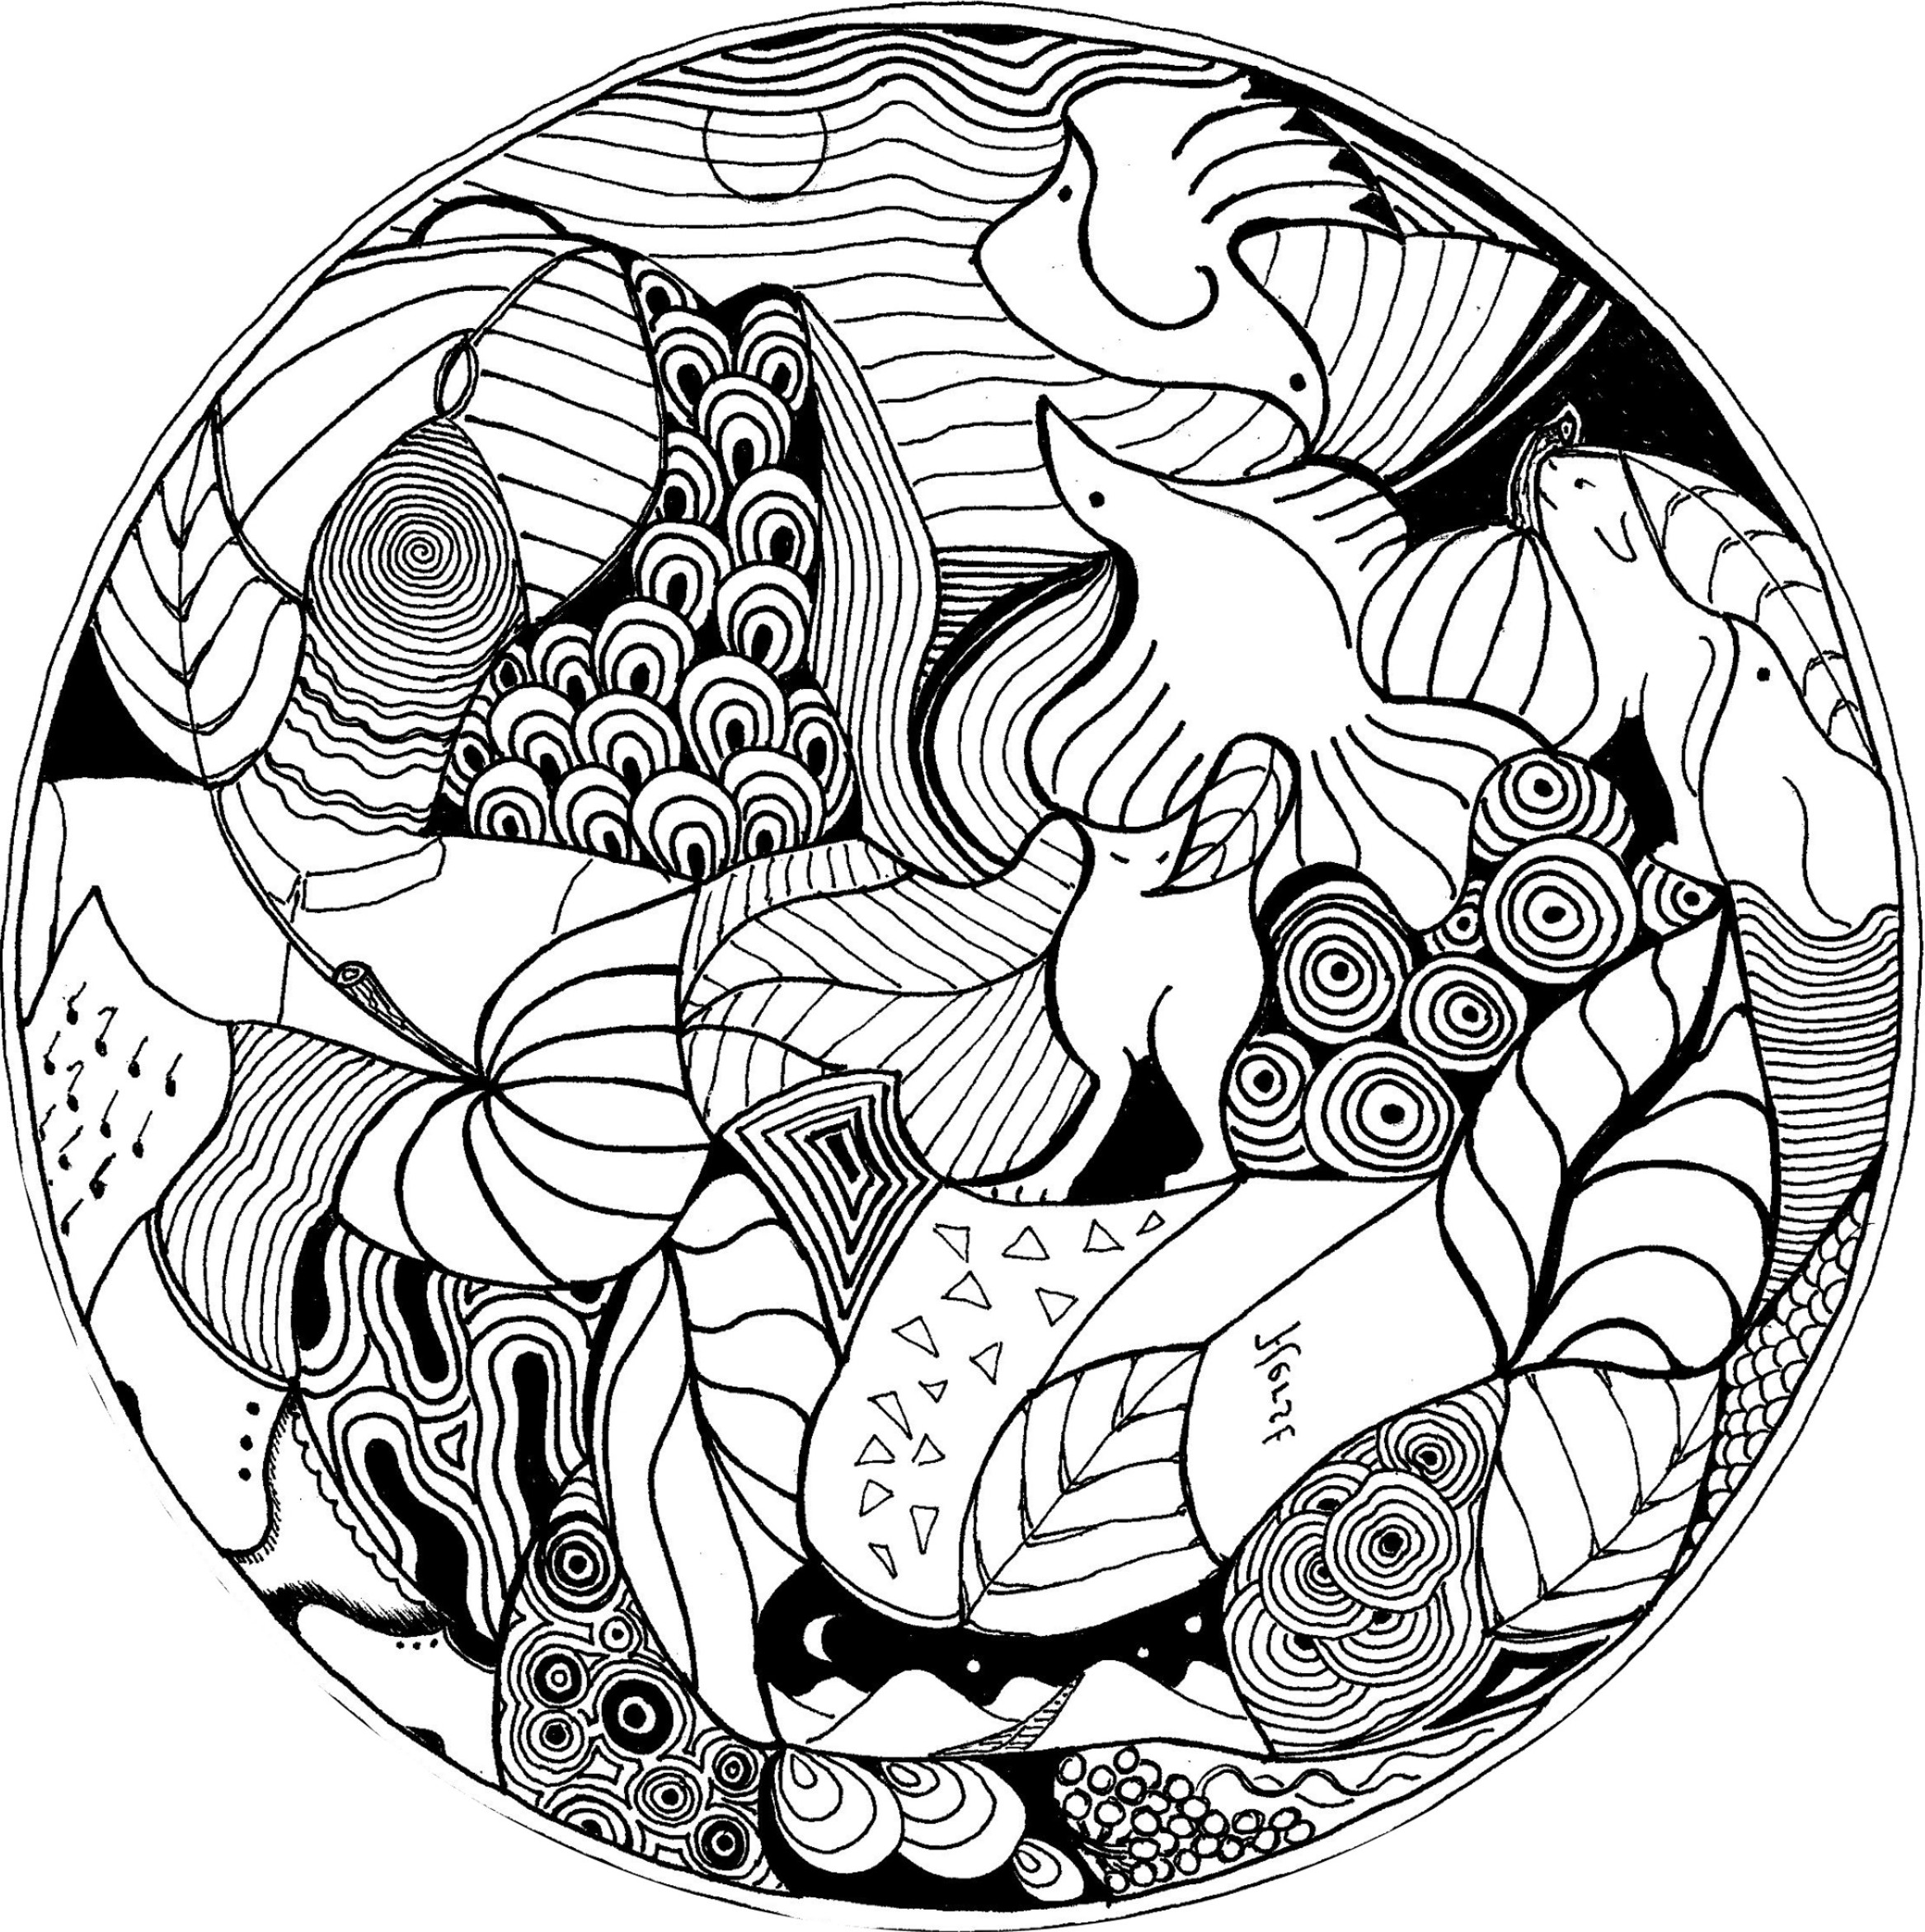 Les coloriages mandalas - Coloriages a colorier ...